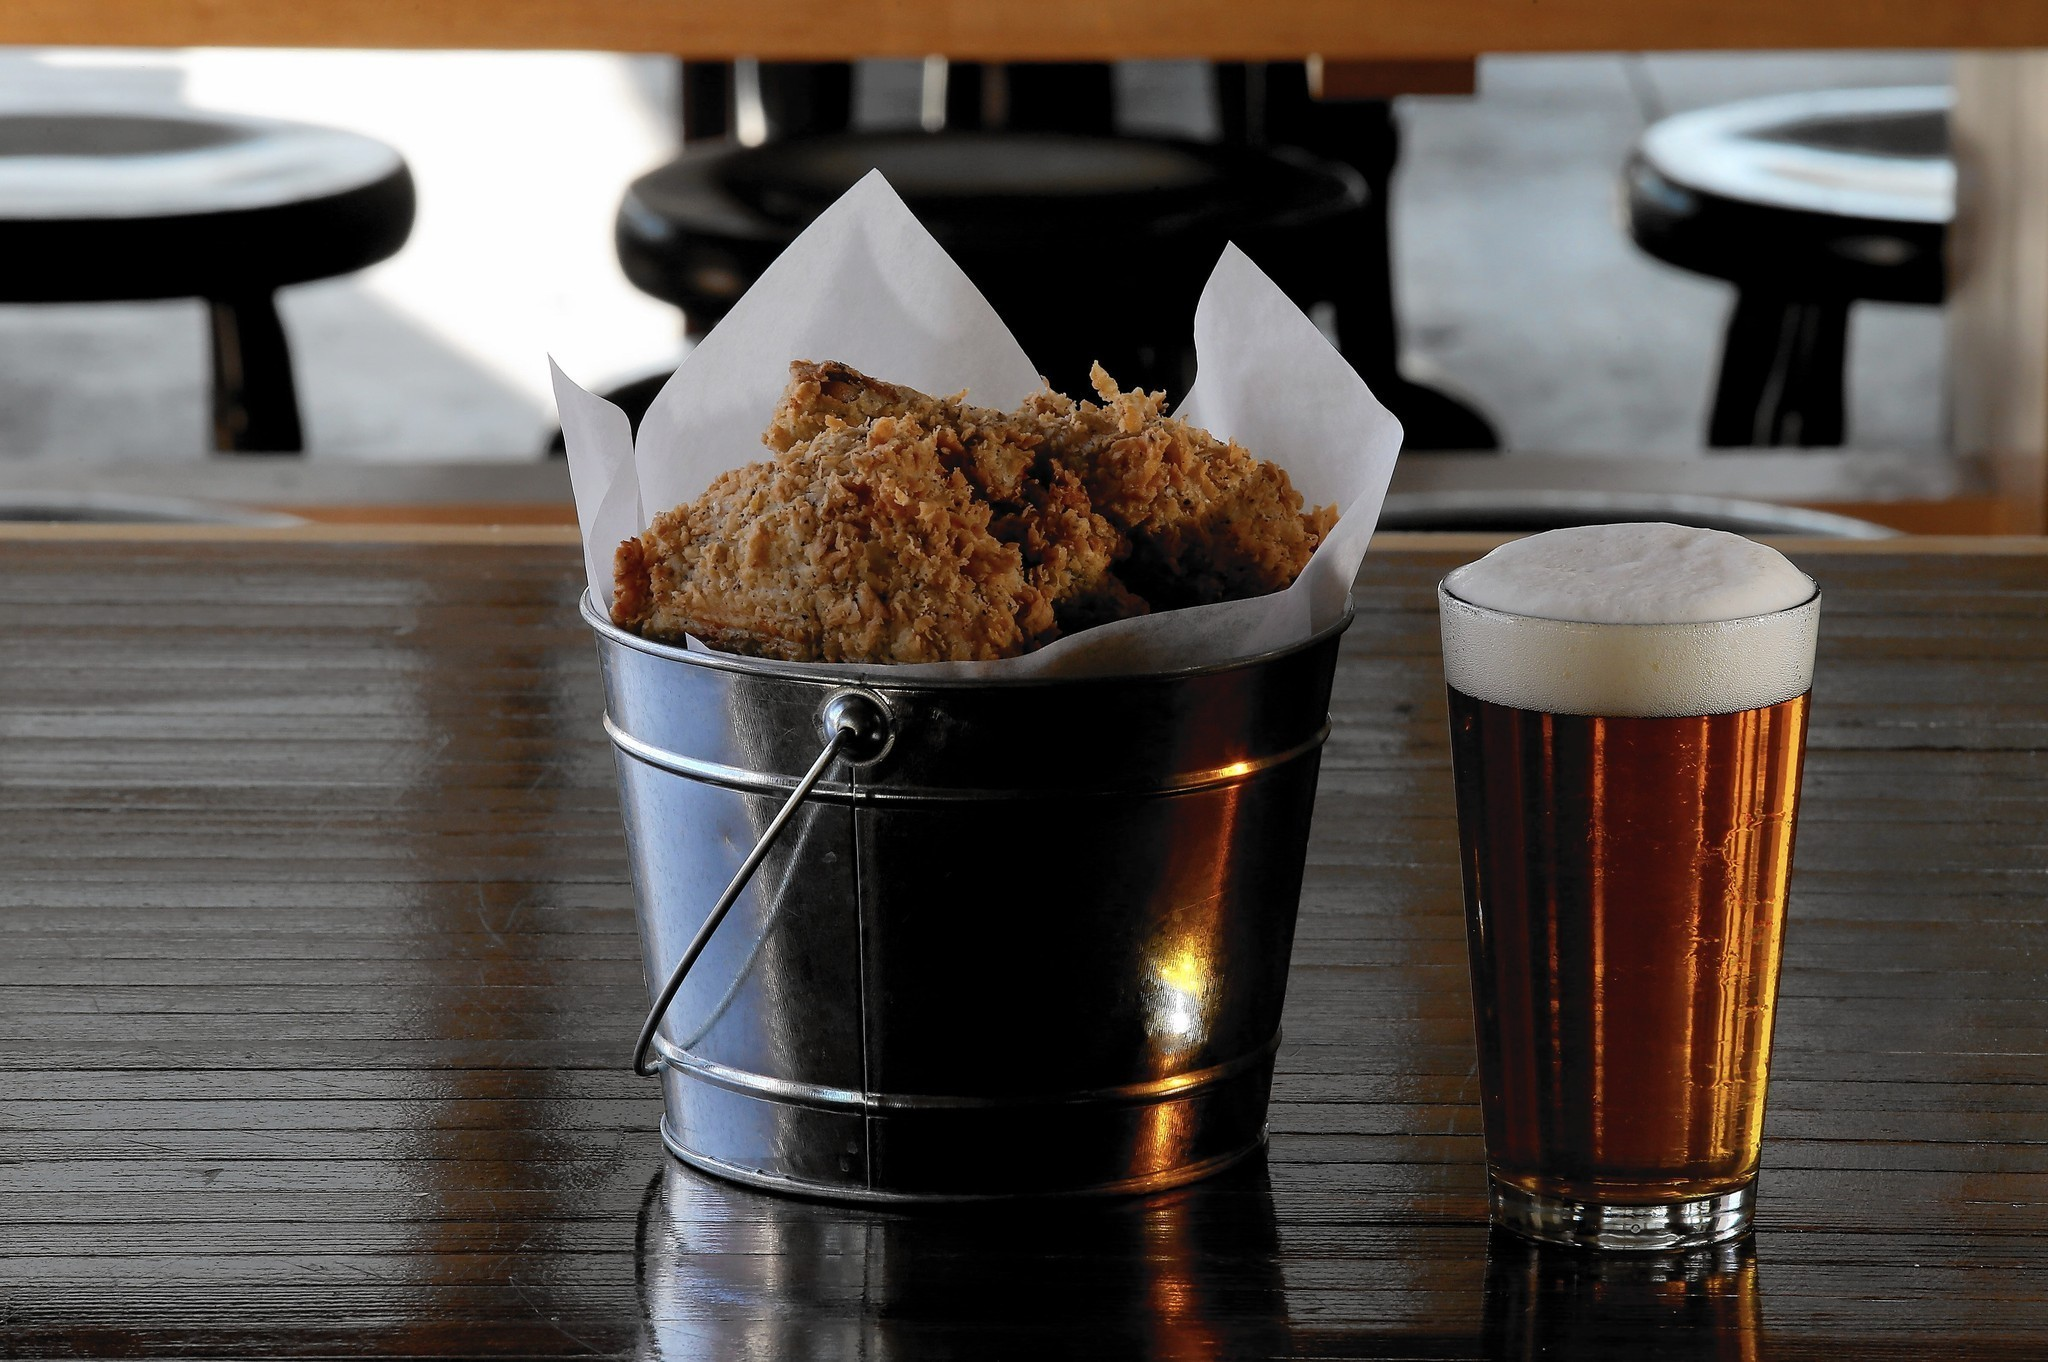 Chicken and beer - photo#40